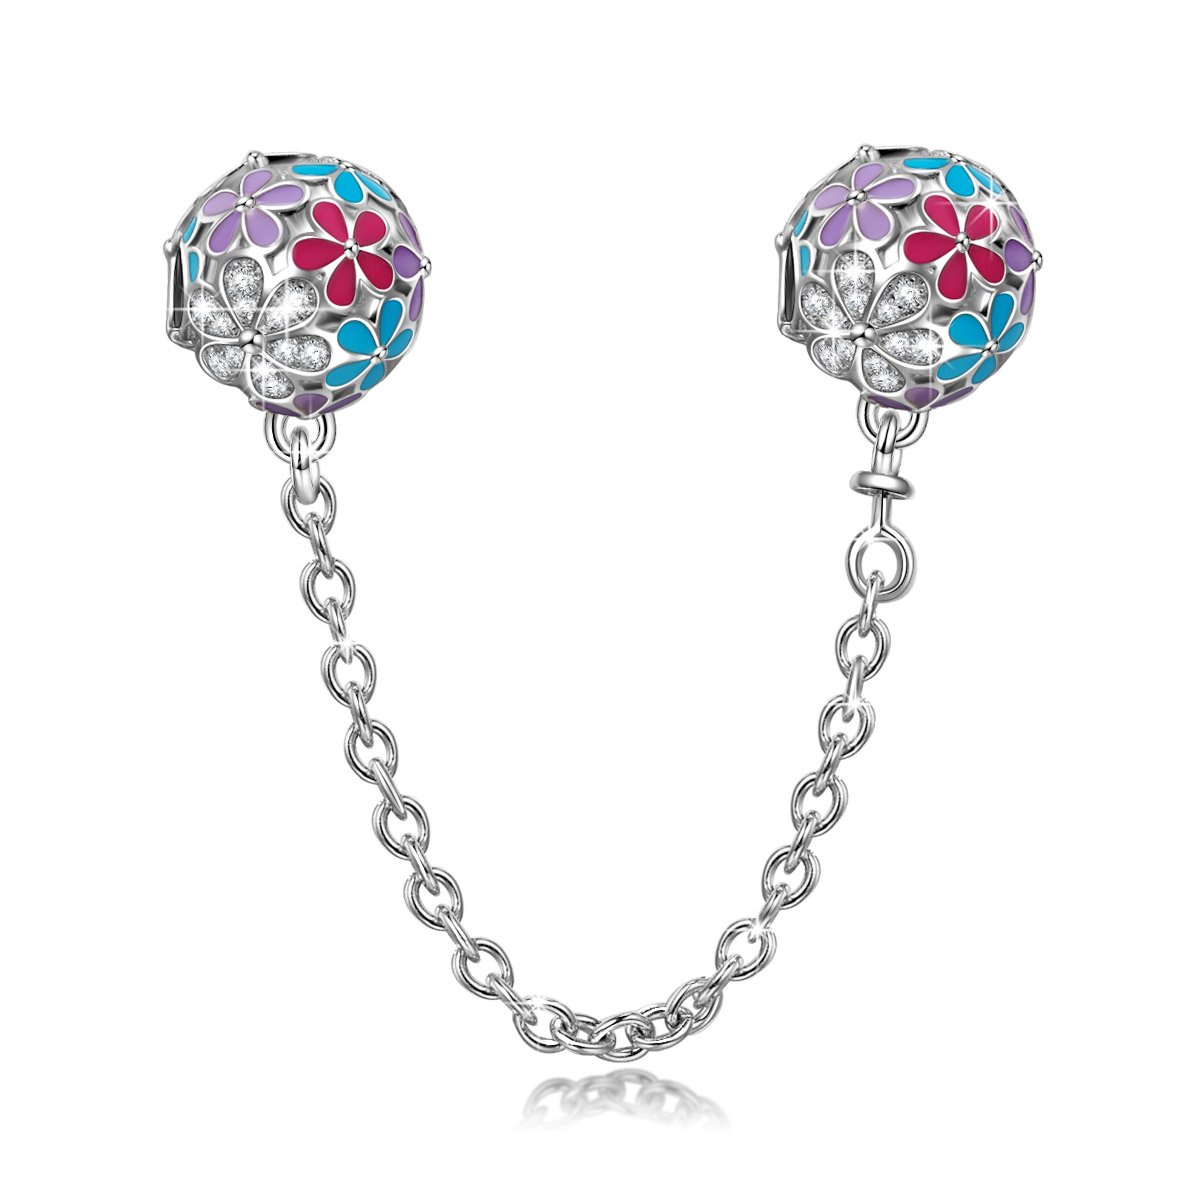 NINAQUEEN 925 Sterling Silver Pandöra Safety Chain for Bracelets, Stopper fit Bead Charms, Birthday Anniversary Chritstmas Back to School Gifts for Her Teen Girls Kids Women Wife Daughter Mom